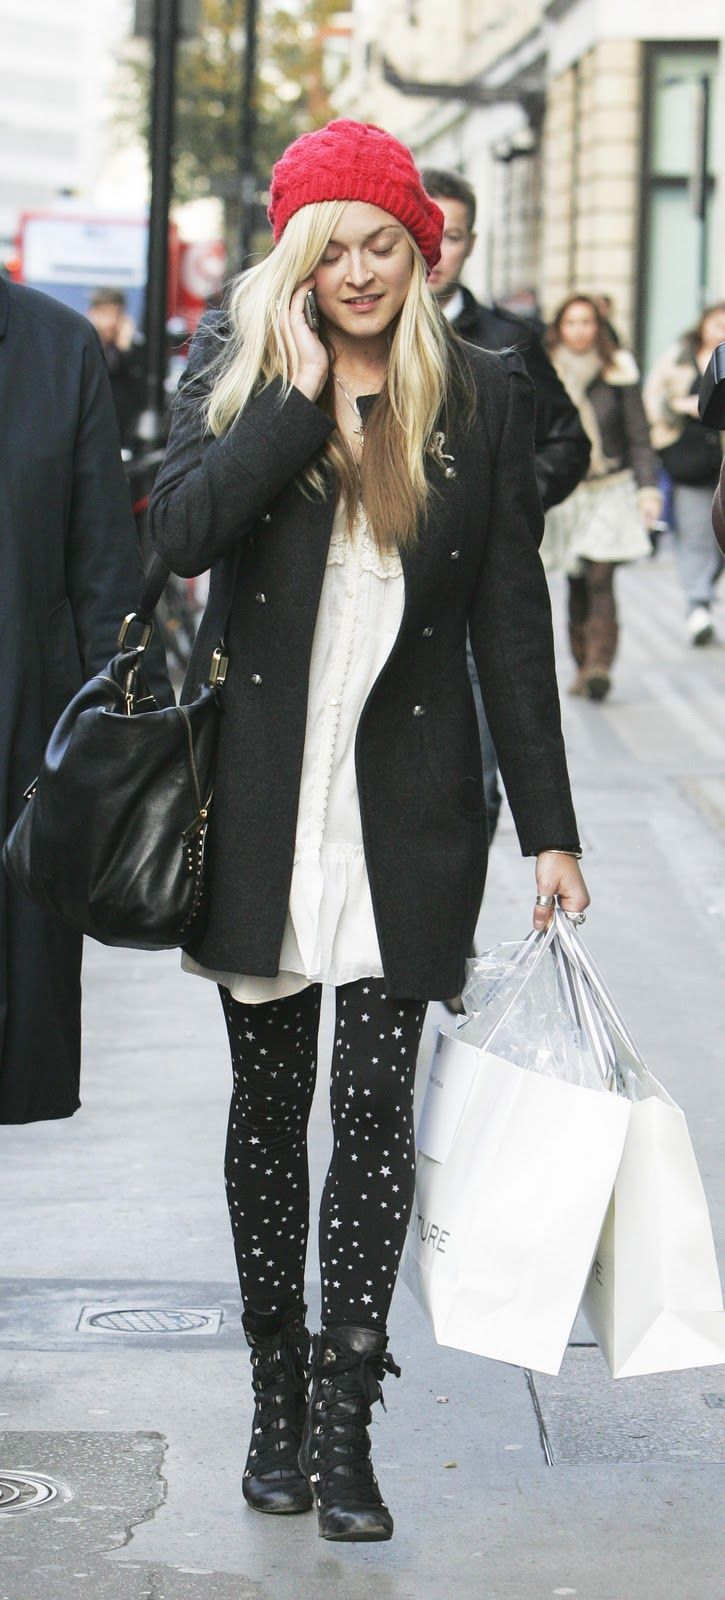 fearne cotton style - i like the tights and the colour pop hat